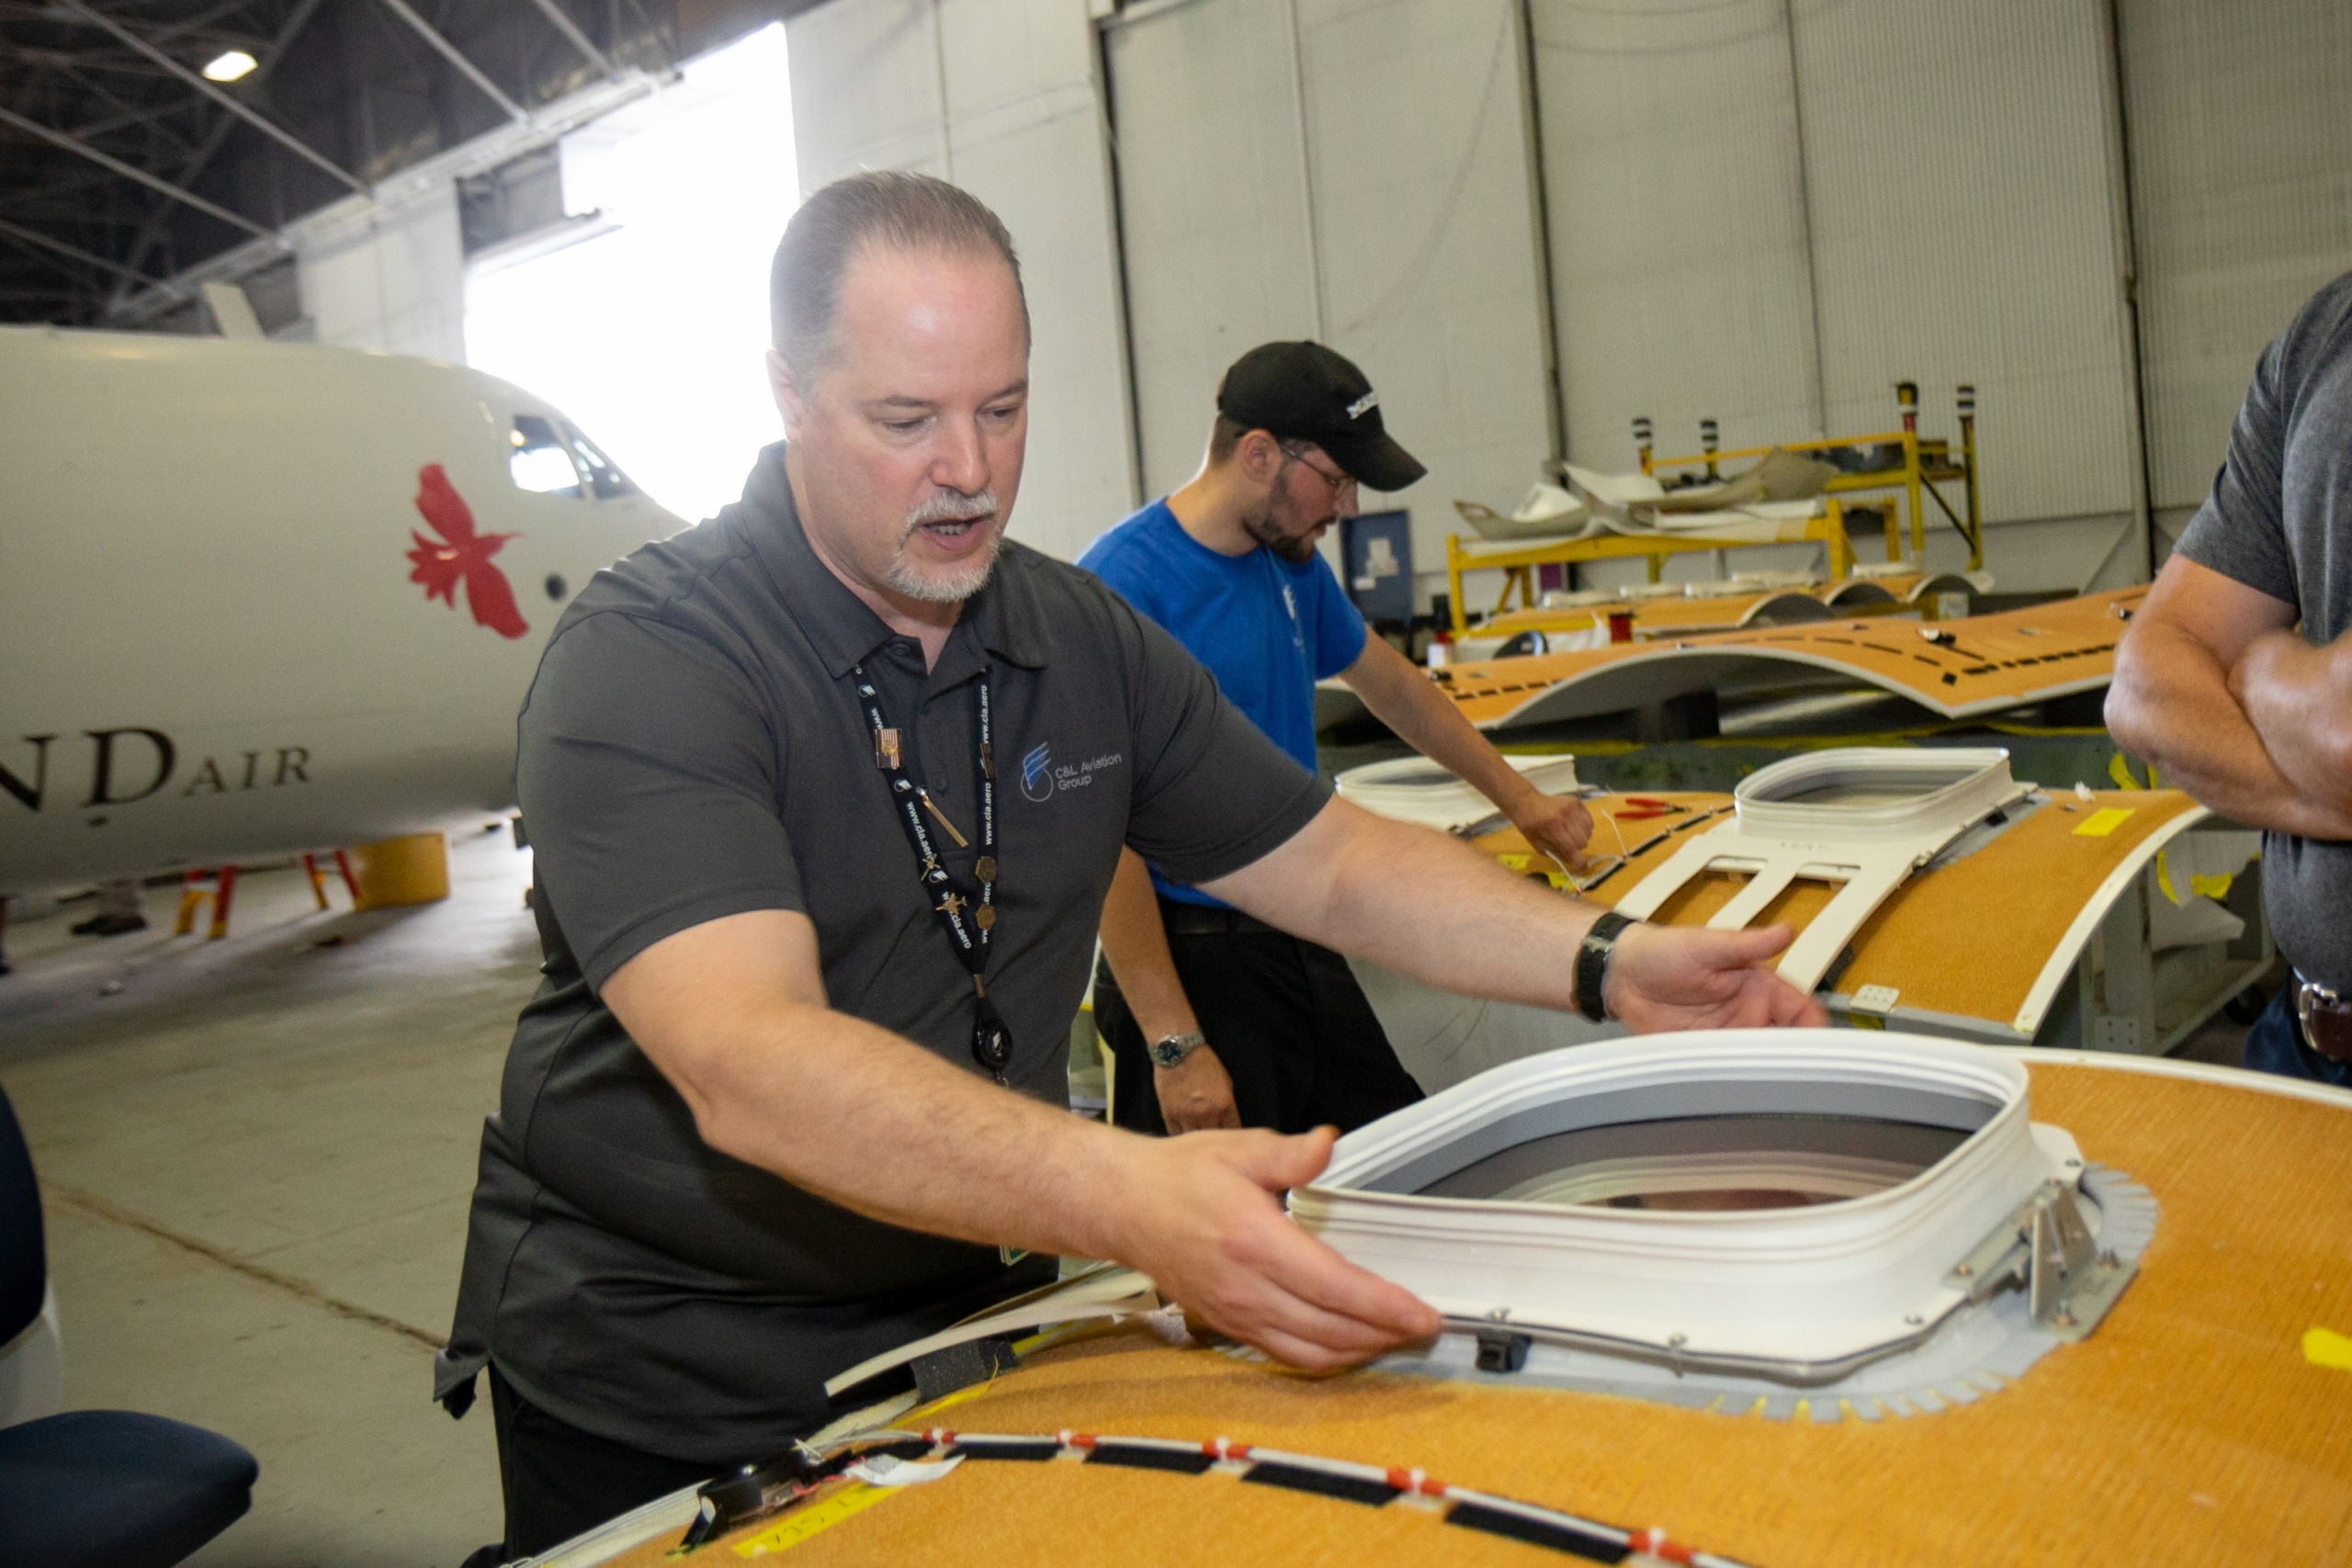 Interior regional aircraft conversion on Embraer aircraft - photo of workers assembling ceiling parts of an aircraft